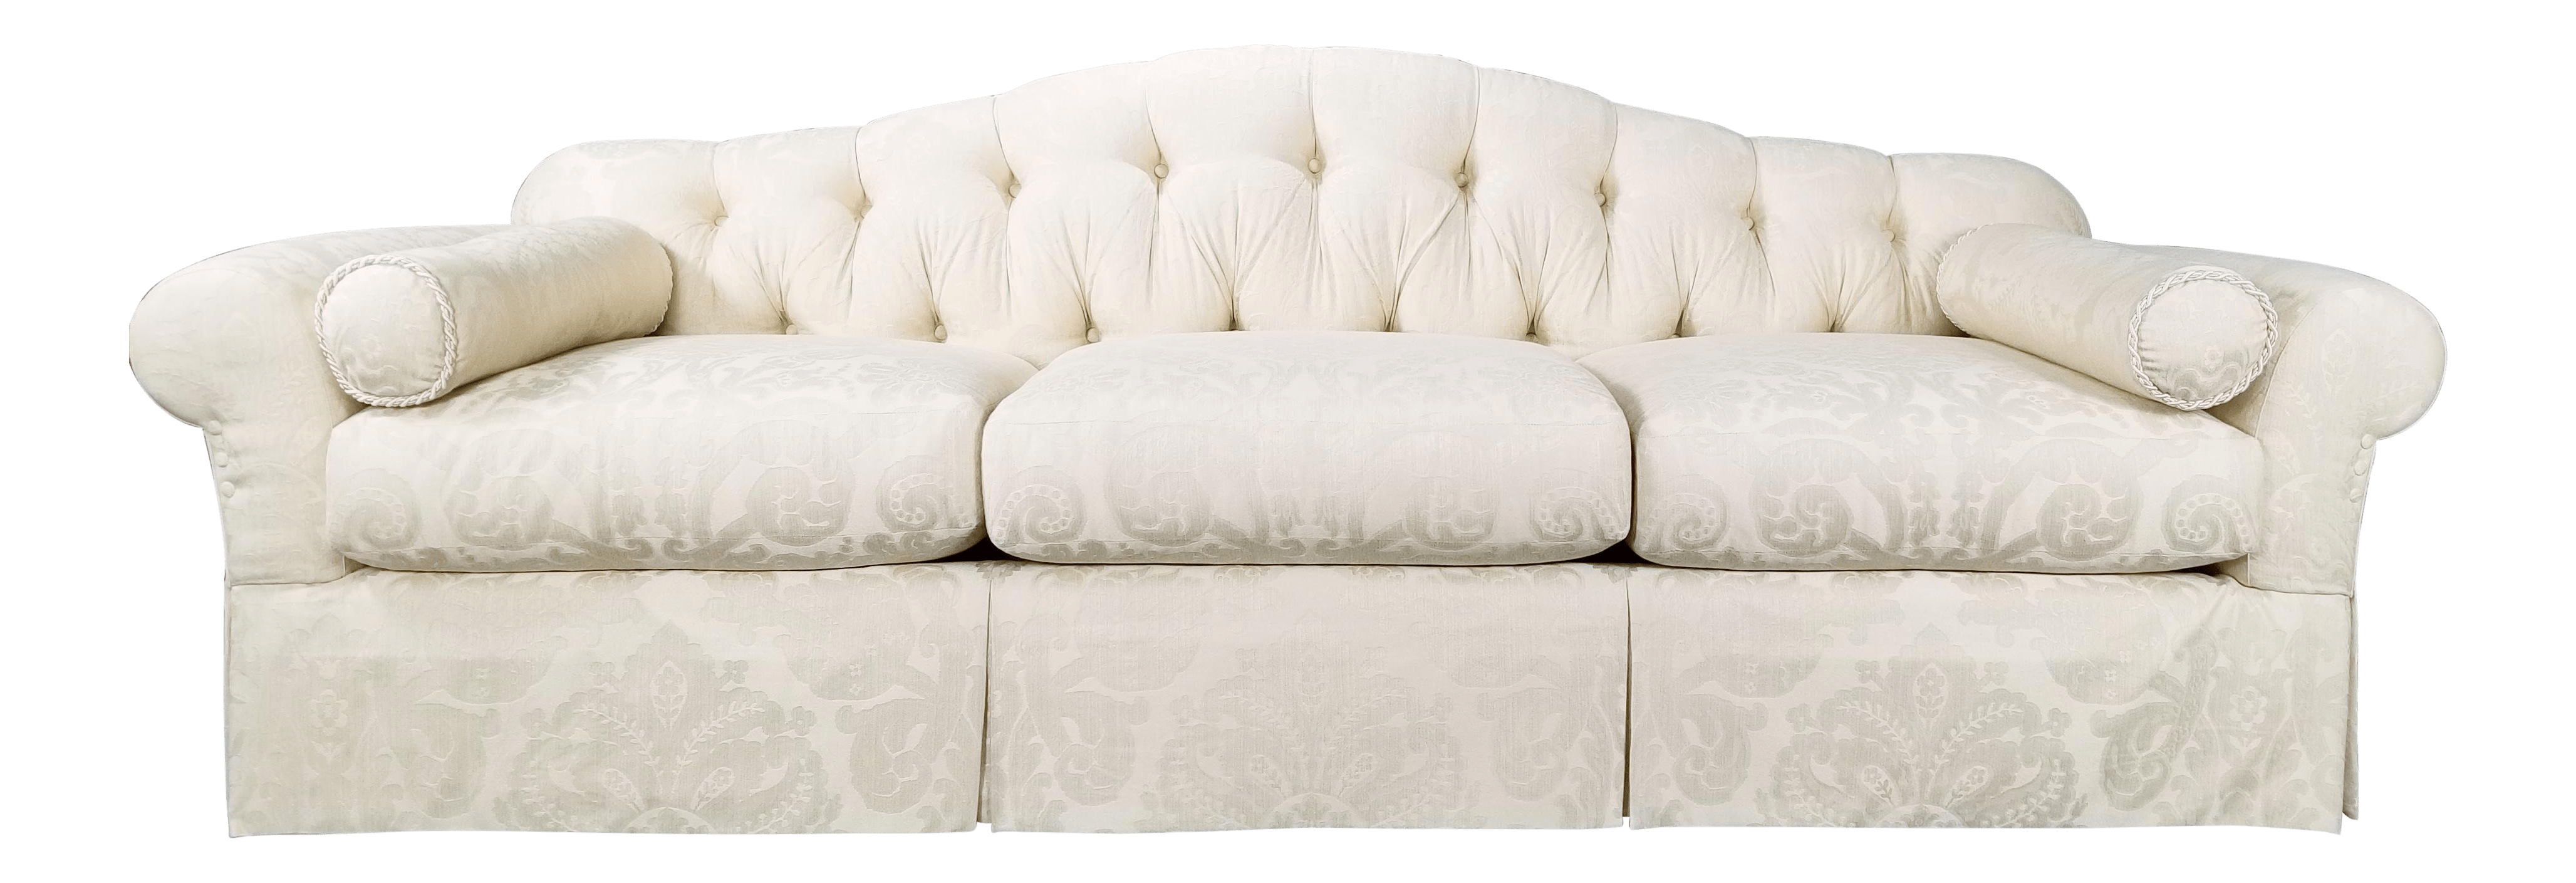 Sofa Modern Modern Baker Furniture Thomas Pheasant Sofa